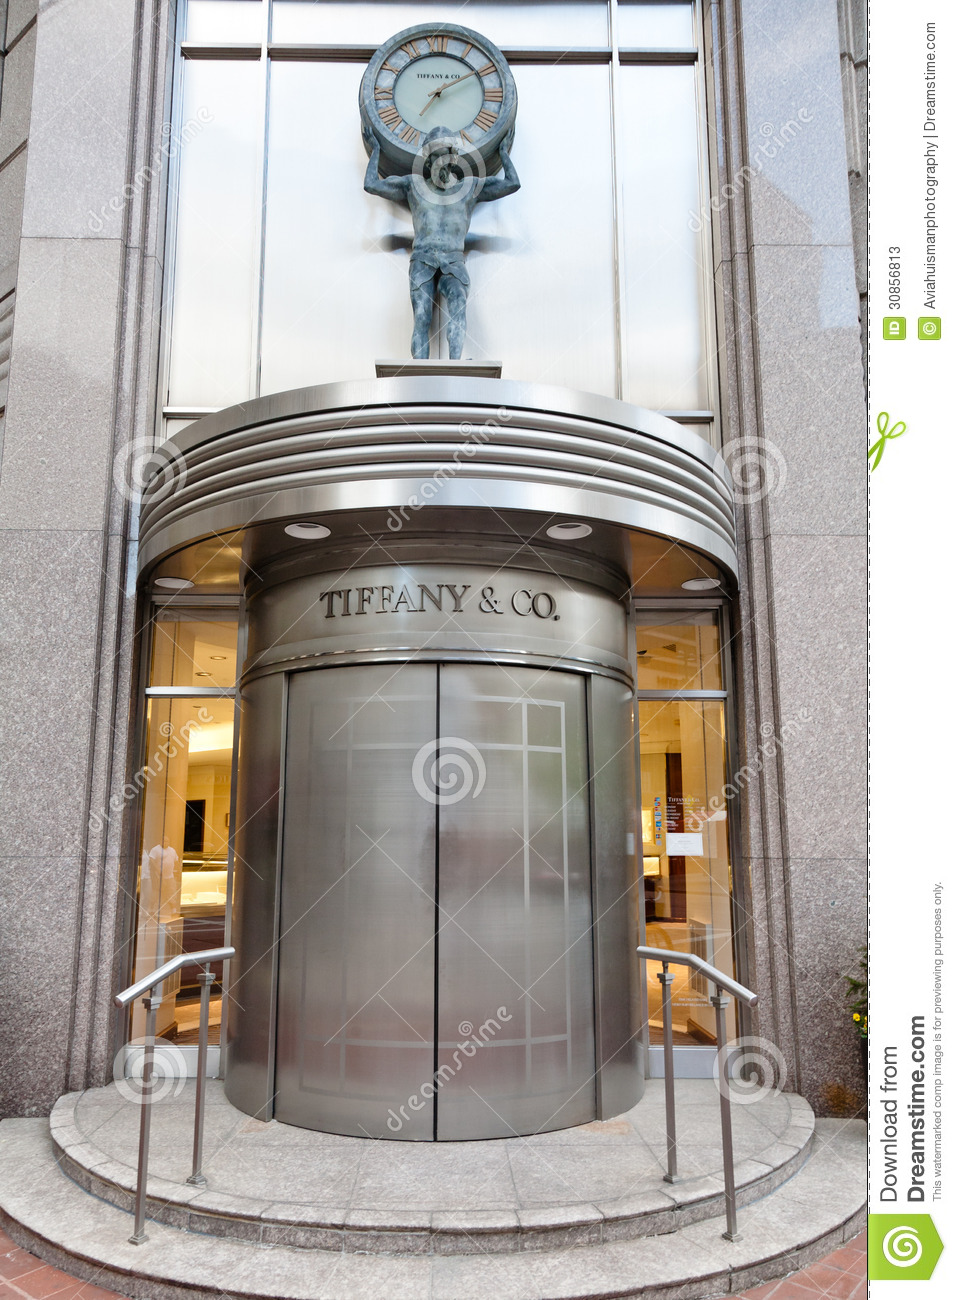 Tiffany co storefront entrance editorial stock photo for Shouse designs